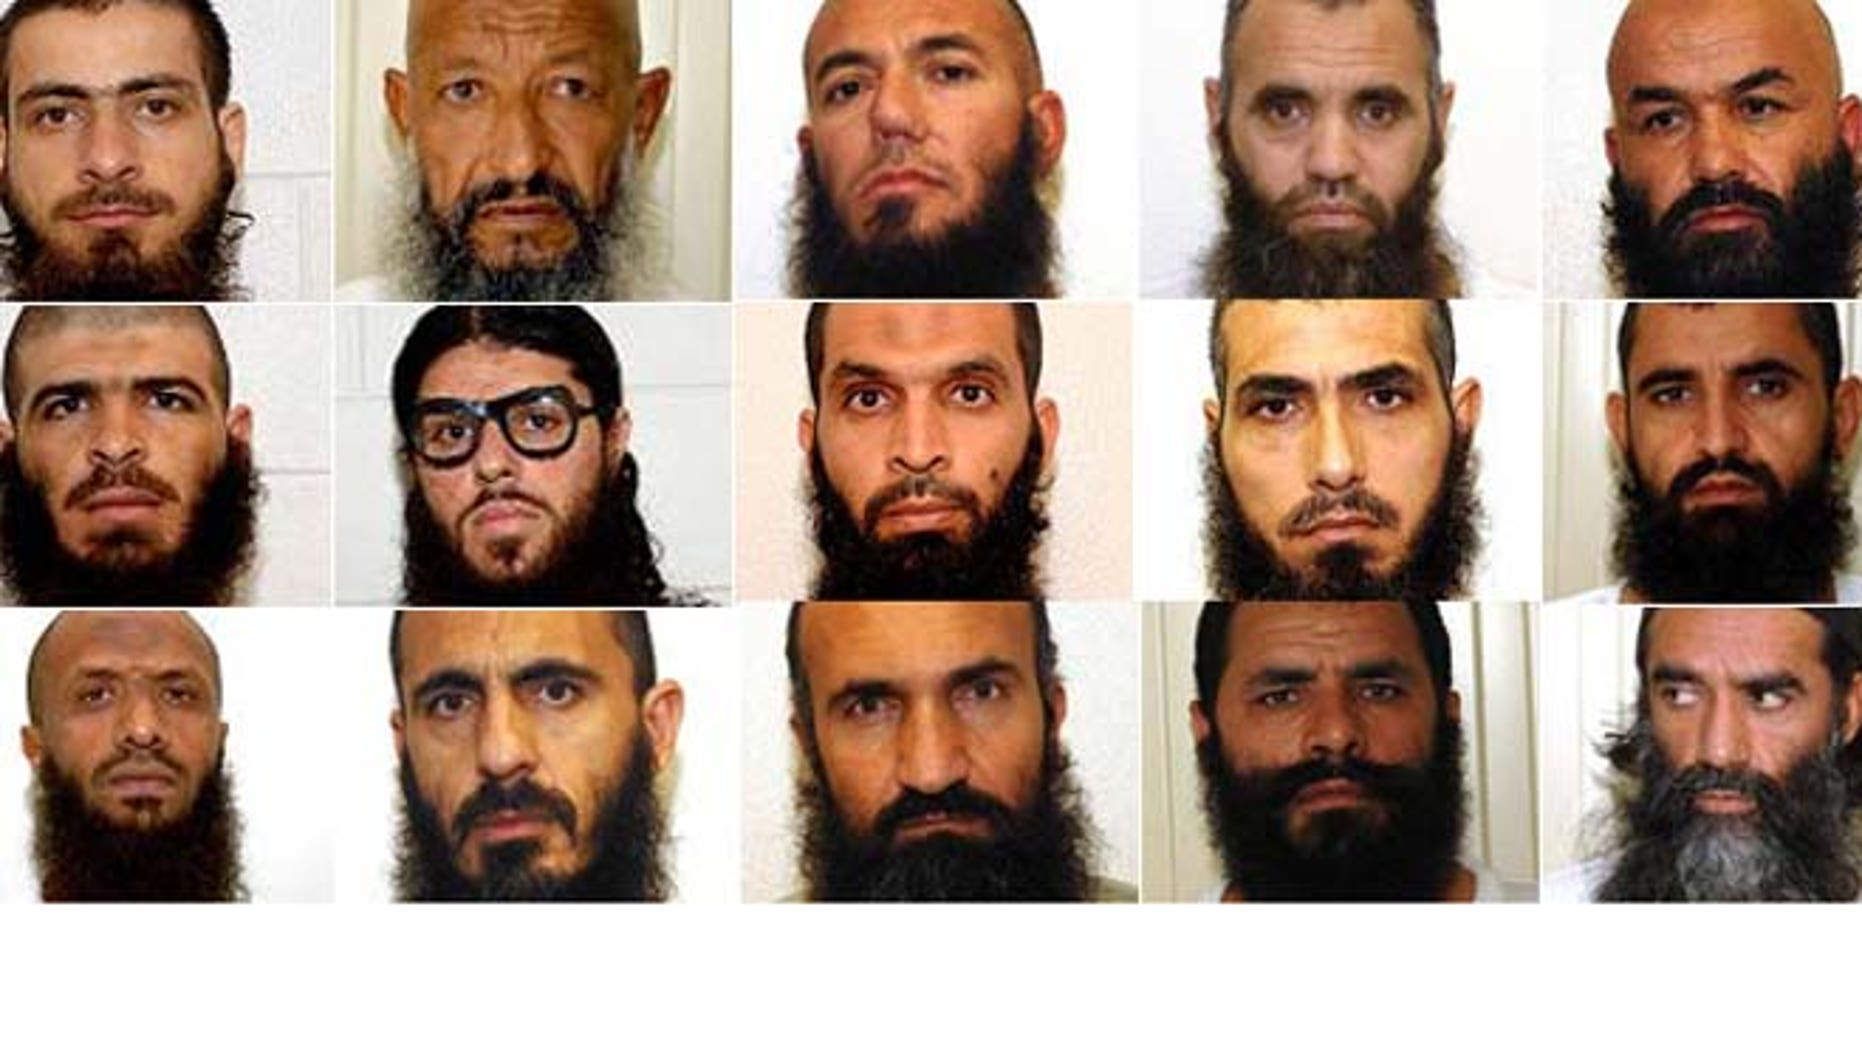 Shown here are 15 of the 23 detainees transferred in 2014 from Guantanamo Bay.